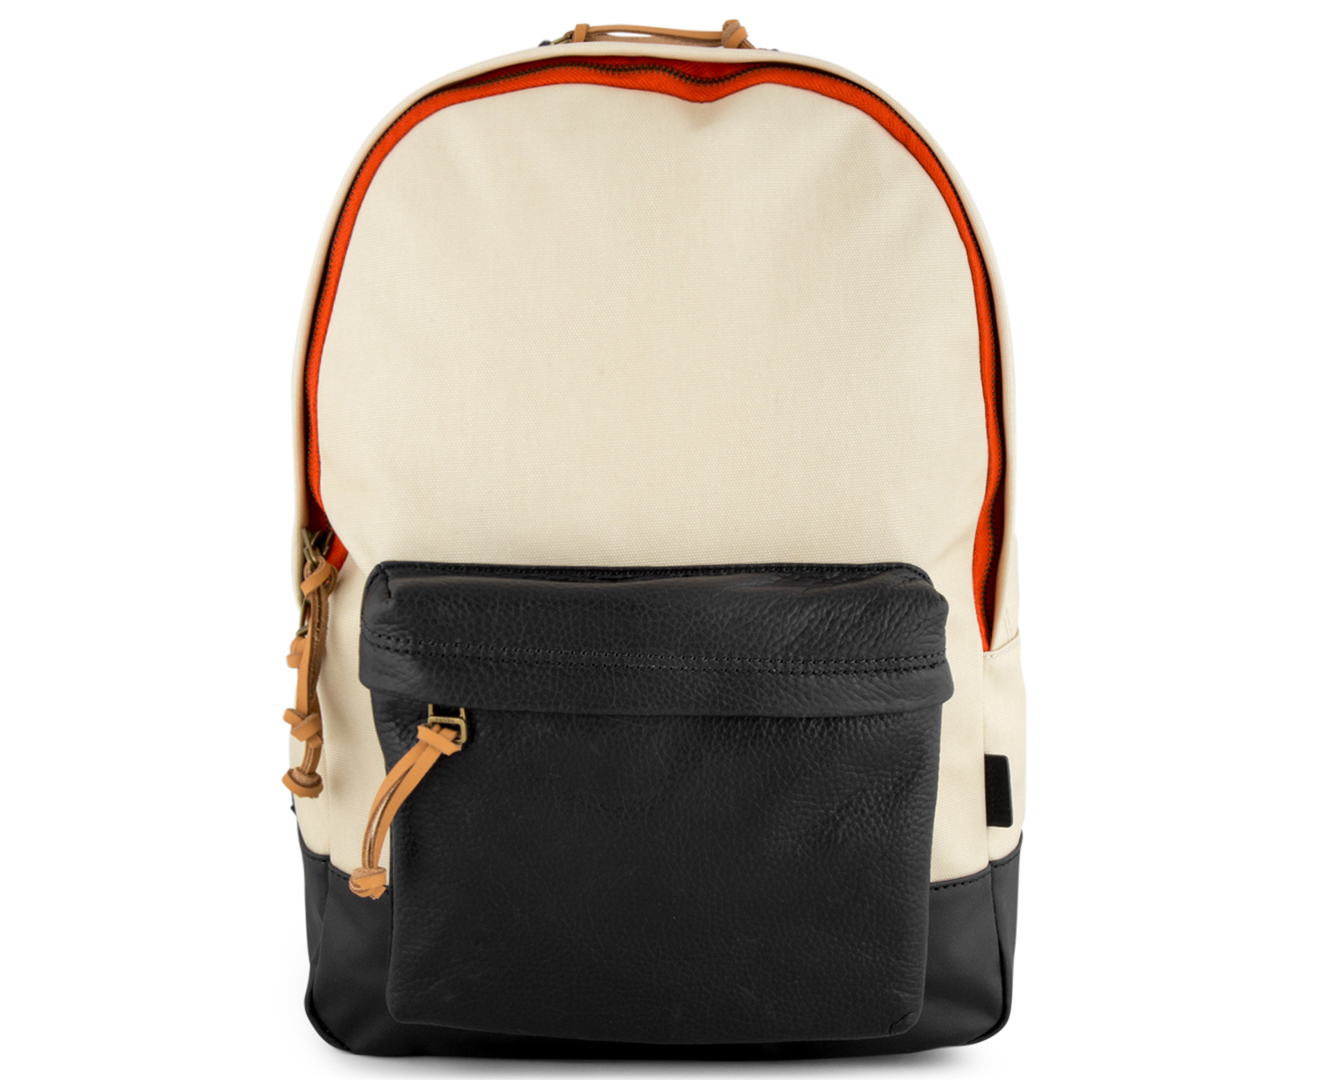 62f5a7bfee Fossil Estate Backpack - Beige Black